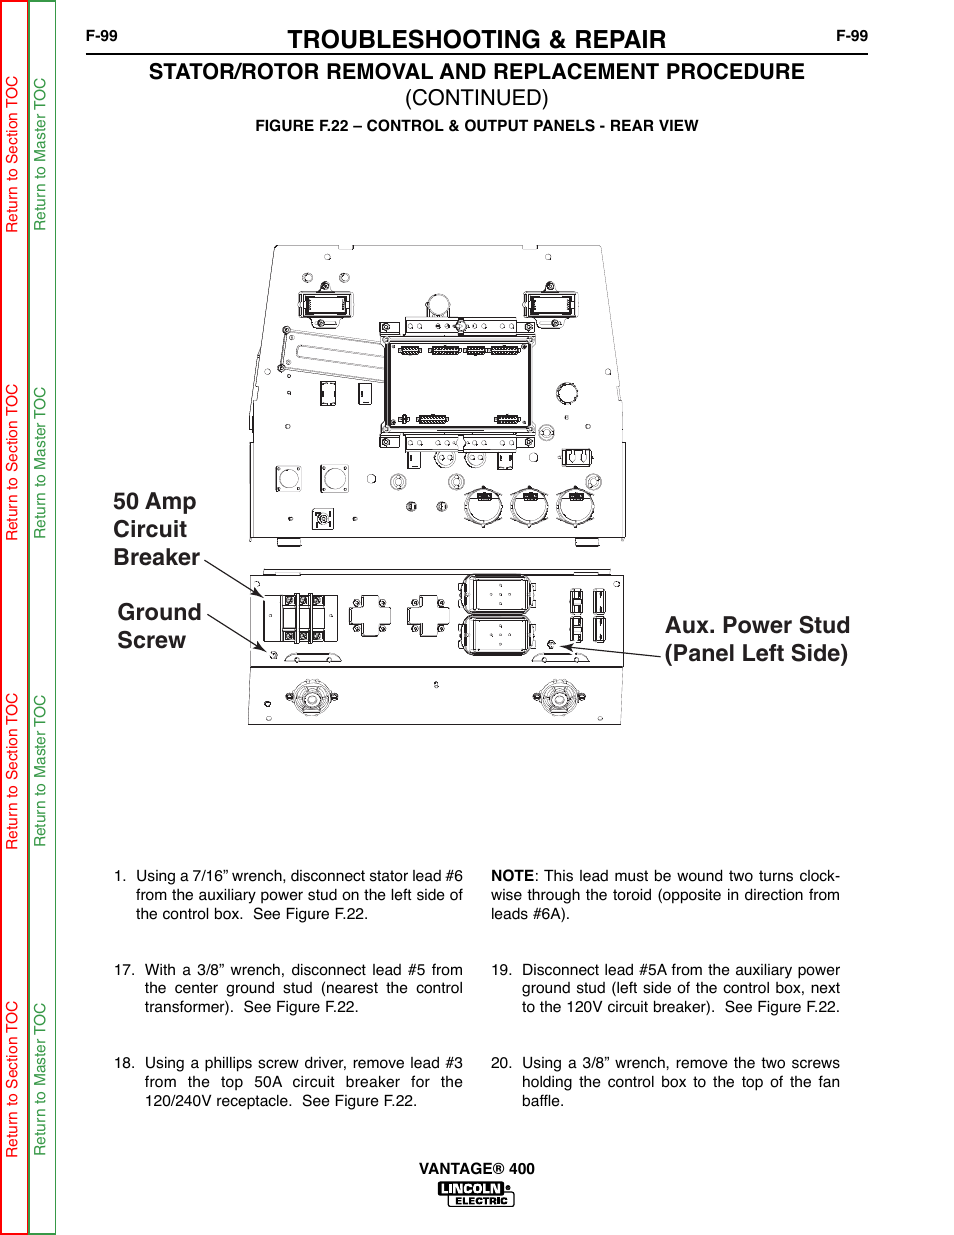 See Figure F22 Troubleshooting Repair Lincoln Electric Vantage 1 A 240v Circuit Breaker Panel 400 User Manual Page 147 166